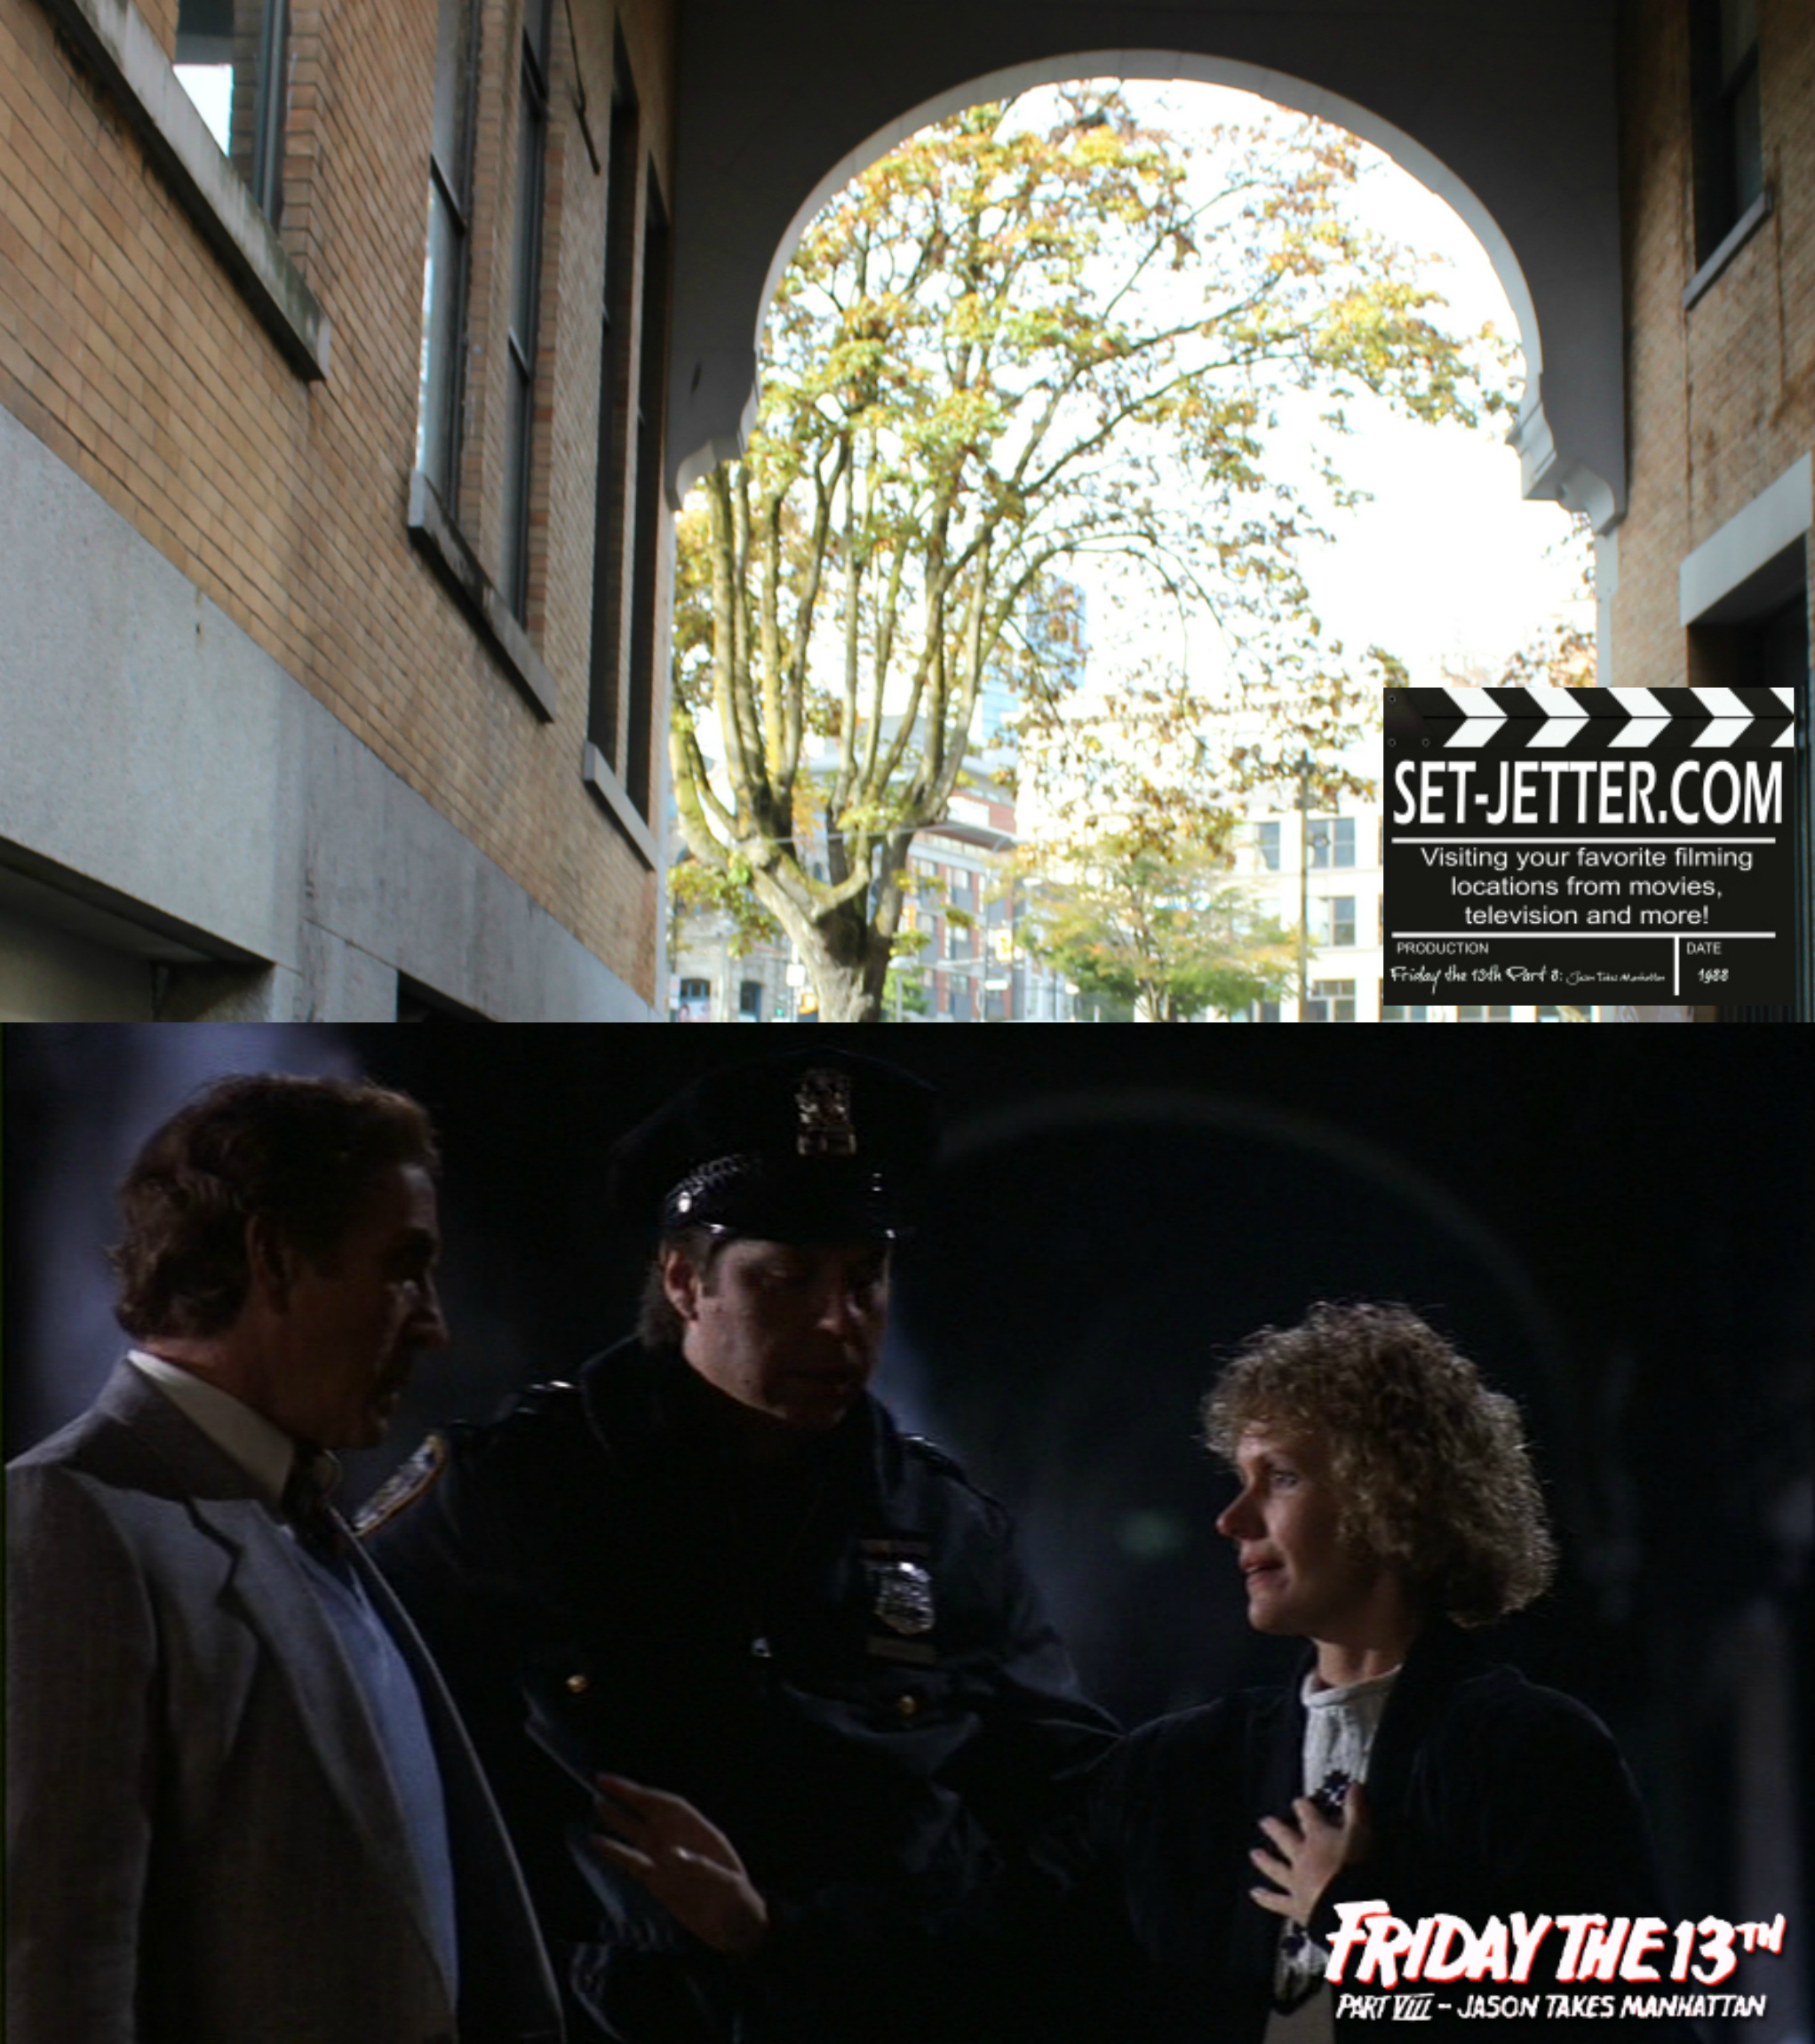 Friday the 13th Part 8 comparison 43.jpg